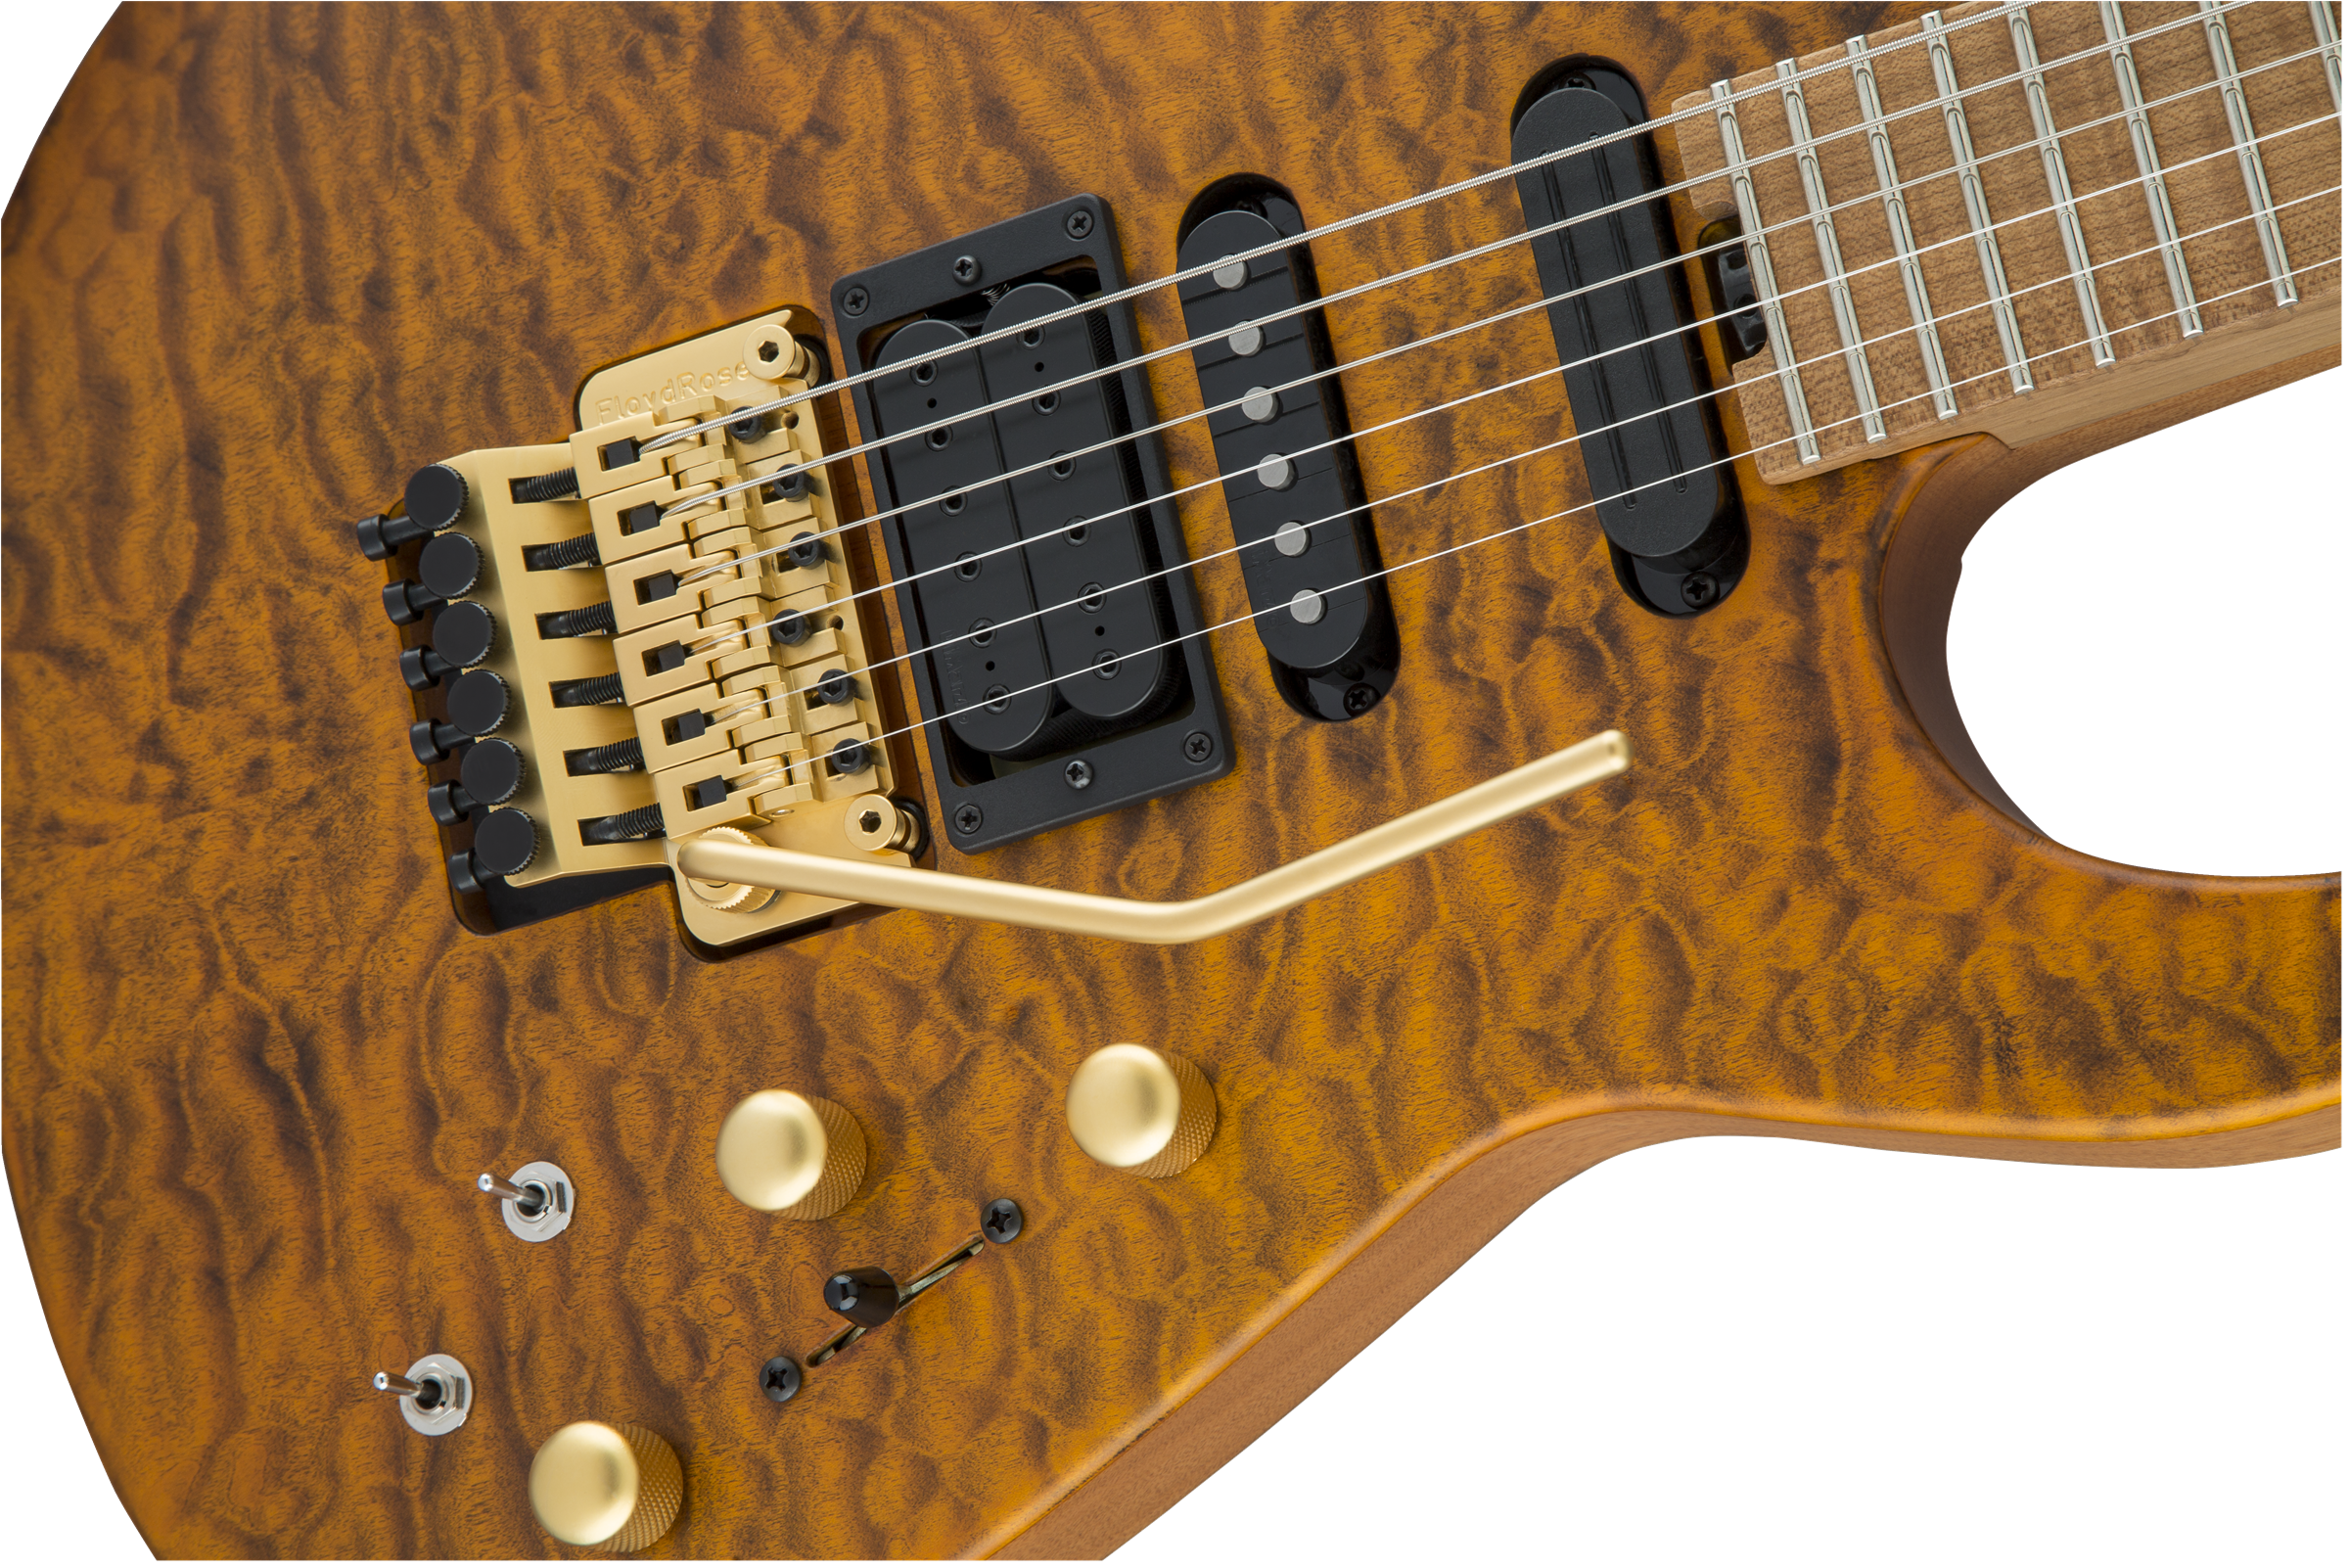 Dinky Usa Signature Phil Collen Pc1 Satin Stain Caramelized Jackson Charvel Model 4 Wiring Diagram As A Longtime Endorser Since 1986 And Lead Guitarist For One Of The Worlds Biggest Selling Rock Bands Def Leppards Has Deftly Wrung